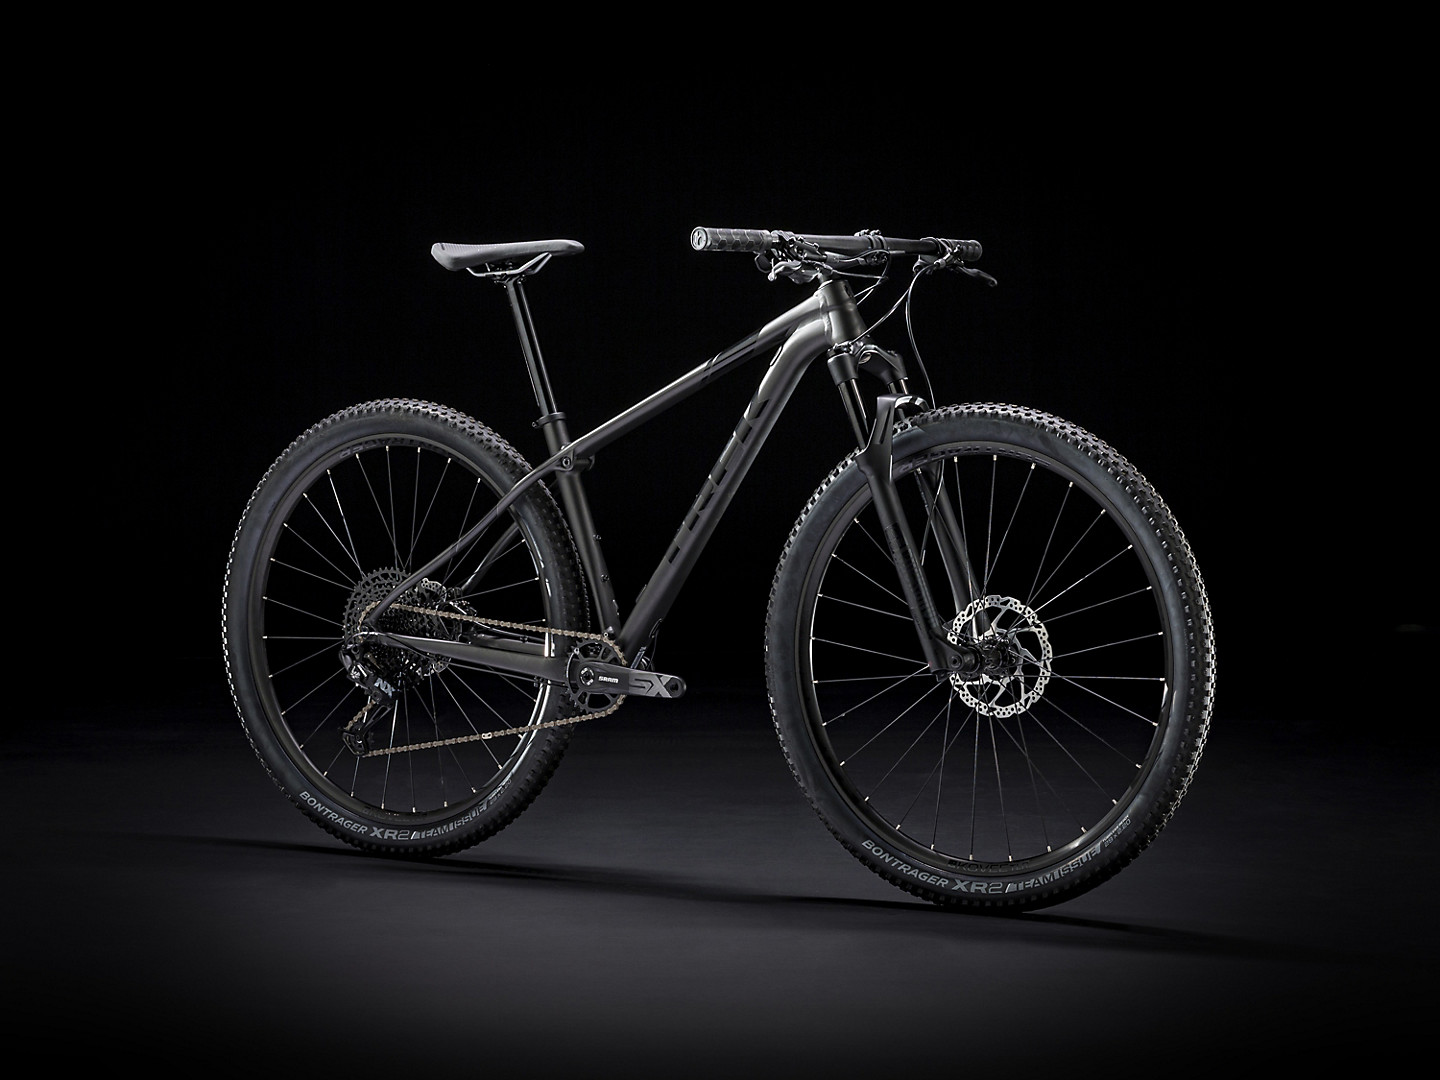 Trek Pro Caliber 6 Mountain Bikes